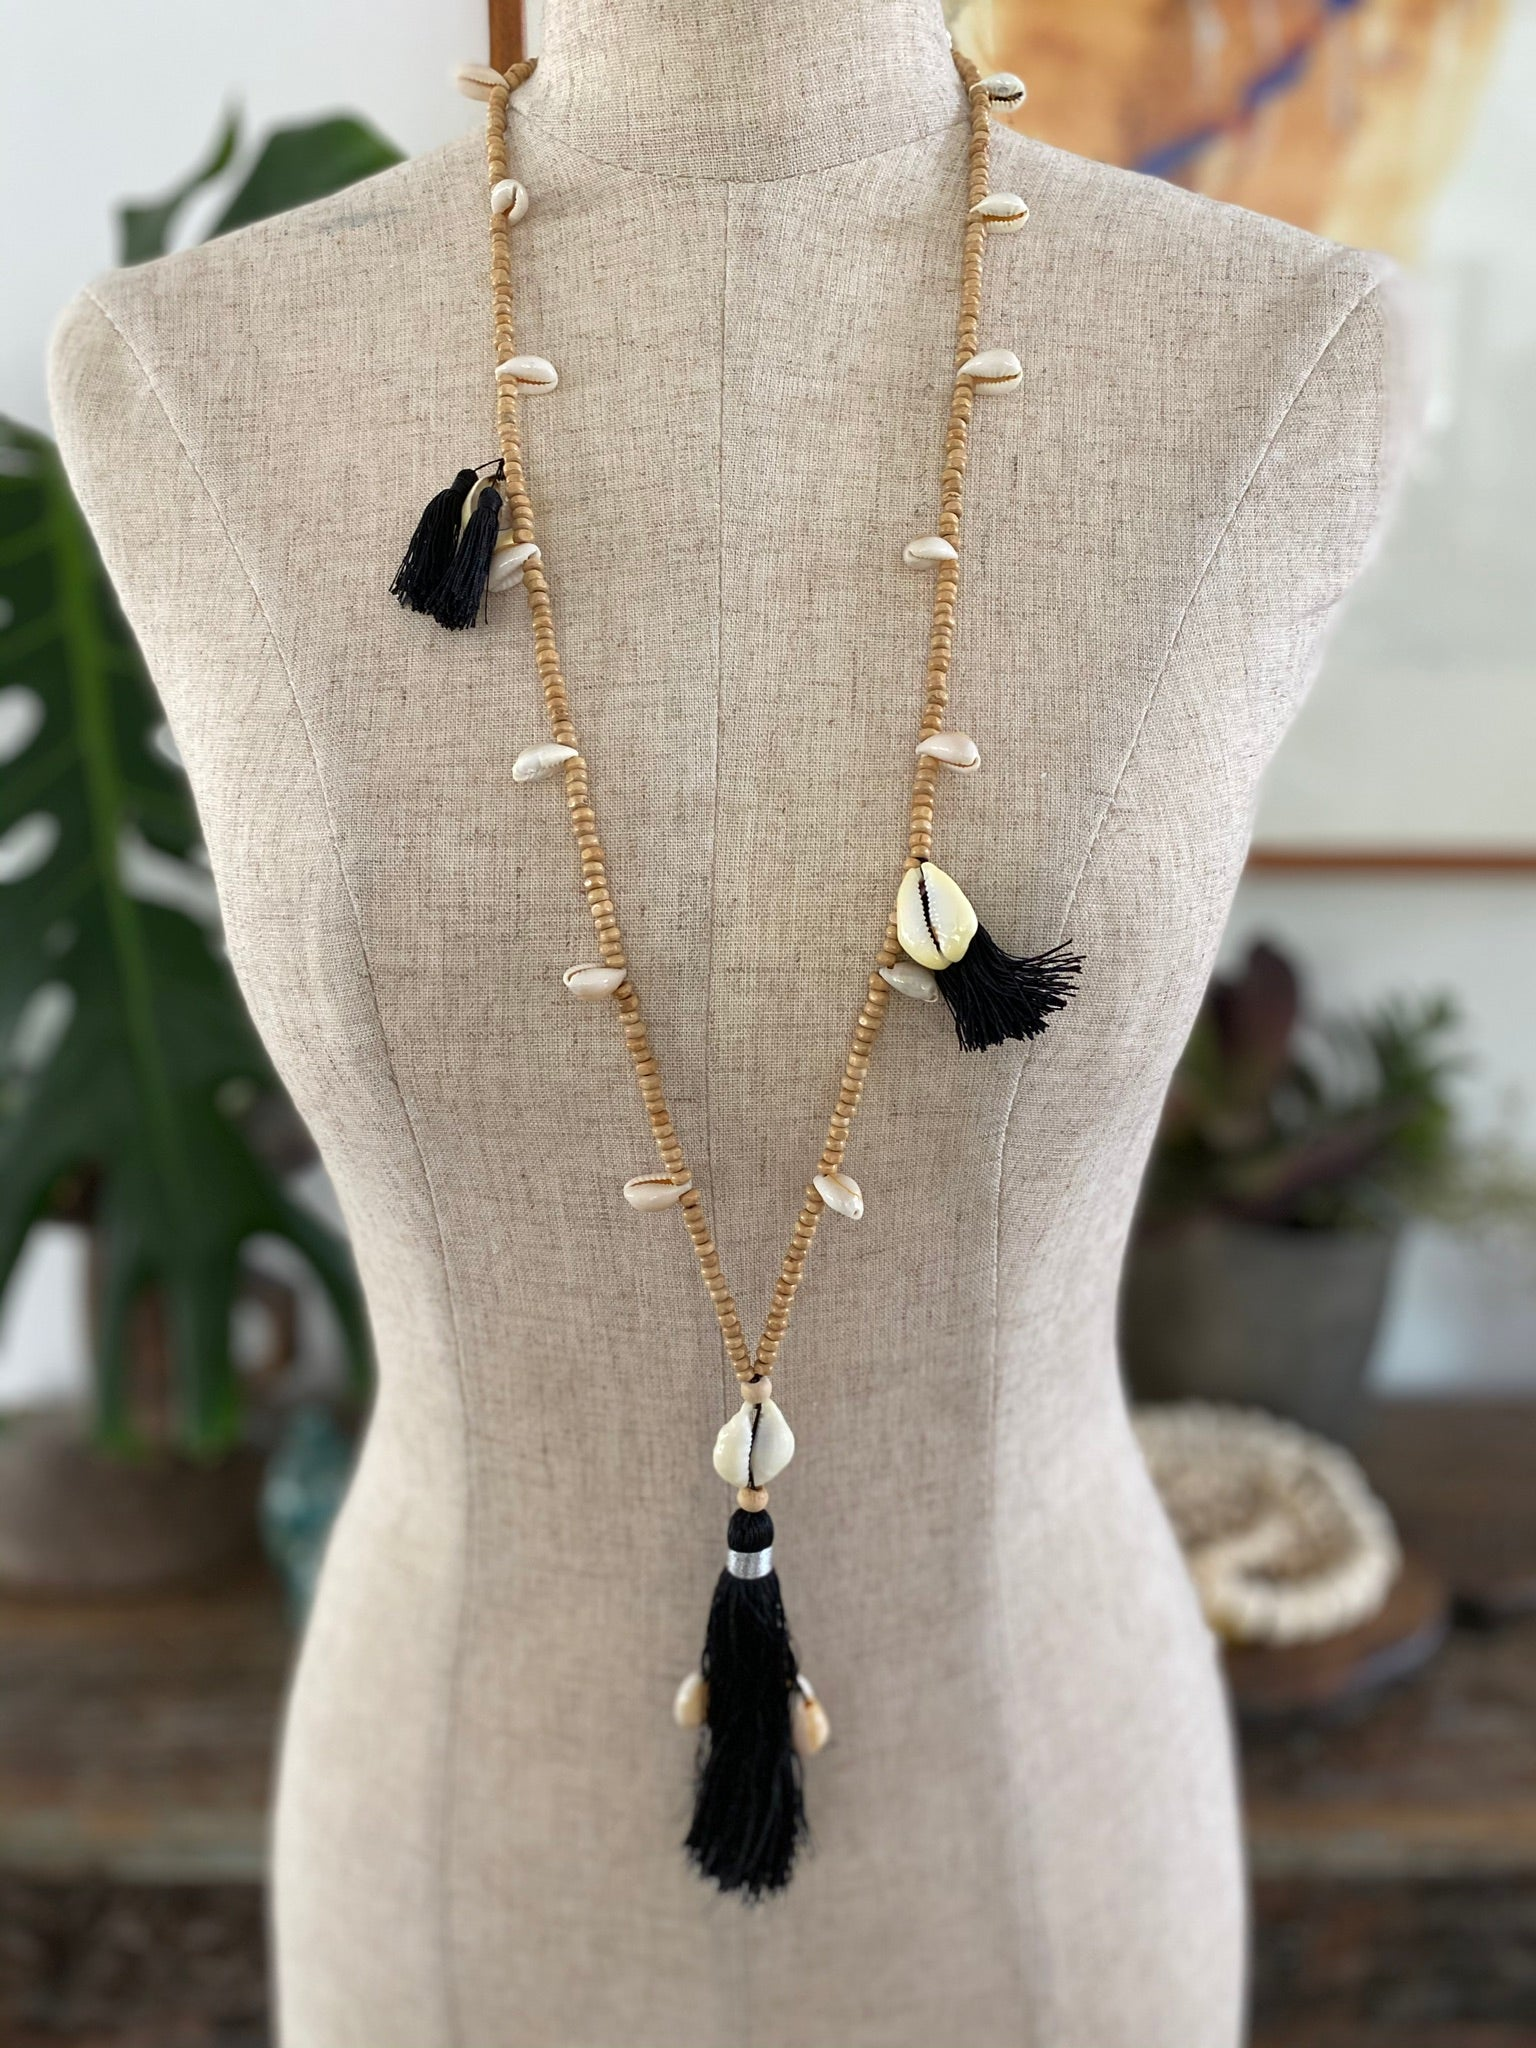 Wooden Bead Tassel with shells - Black